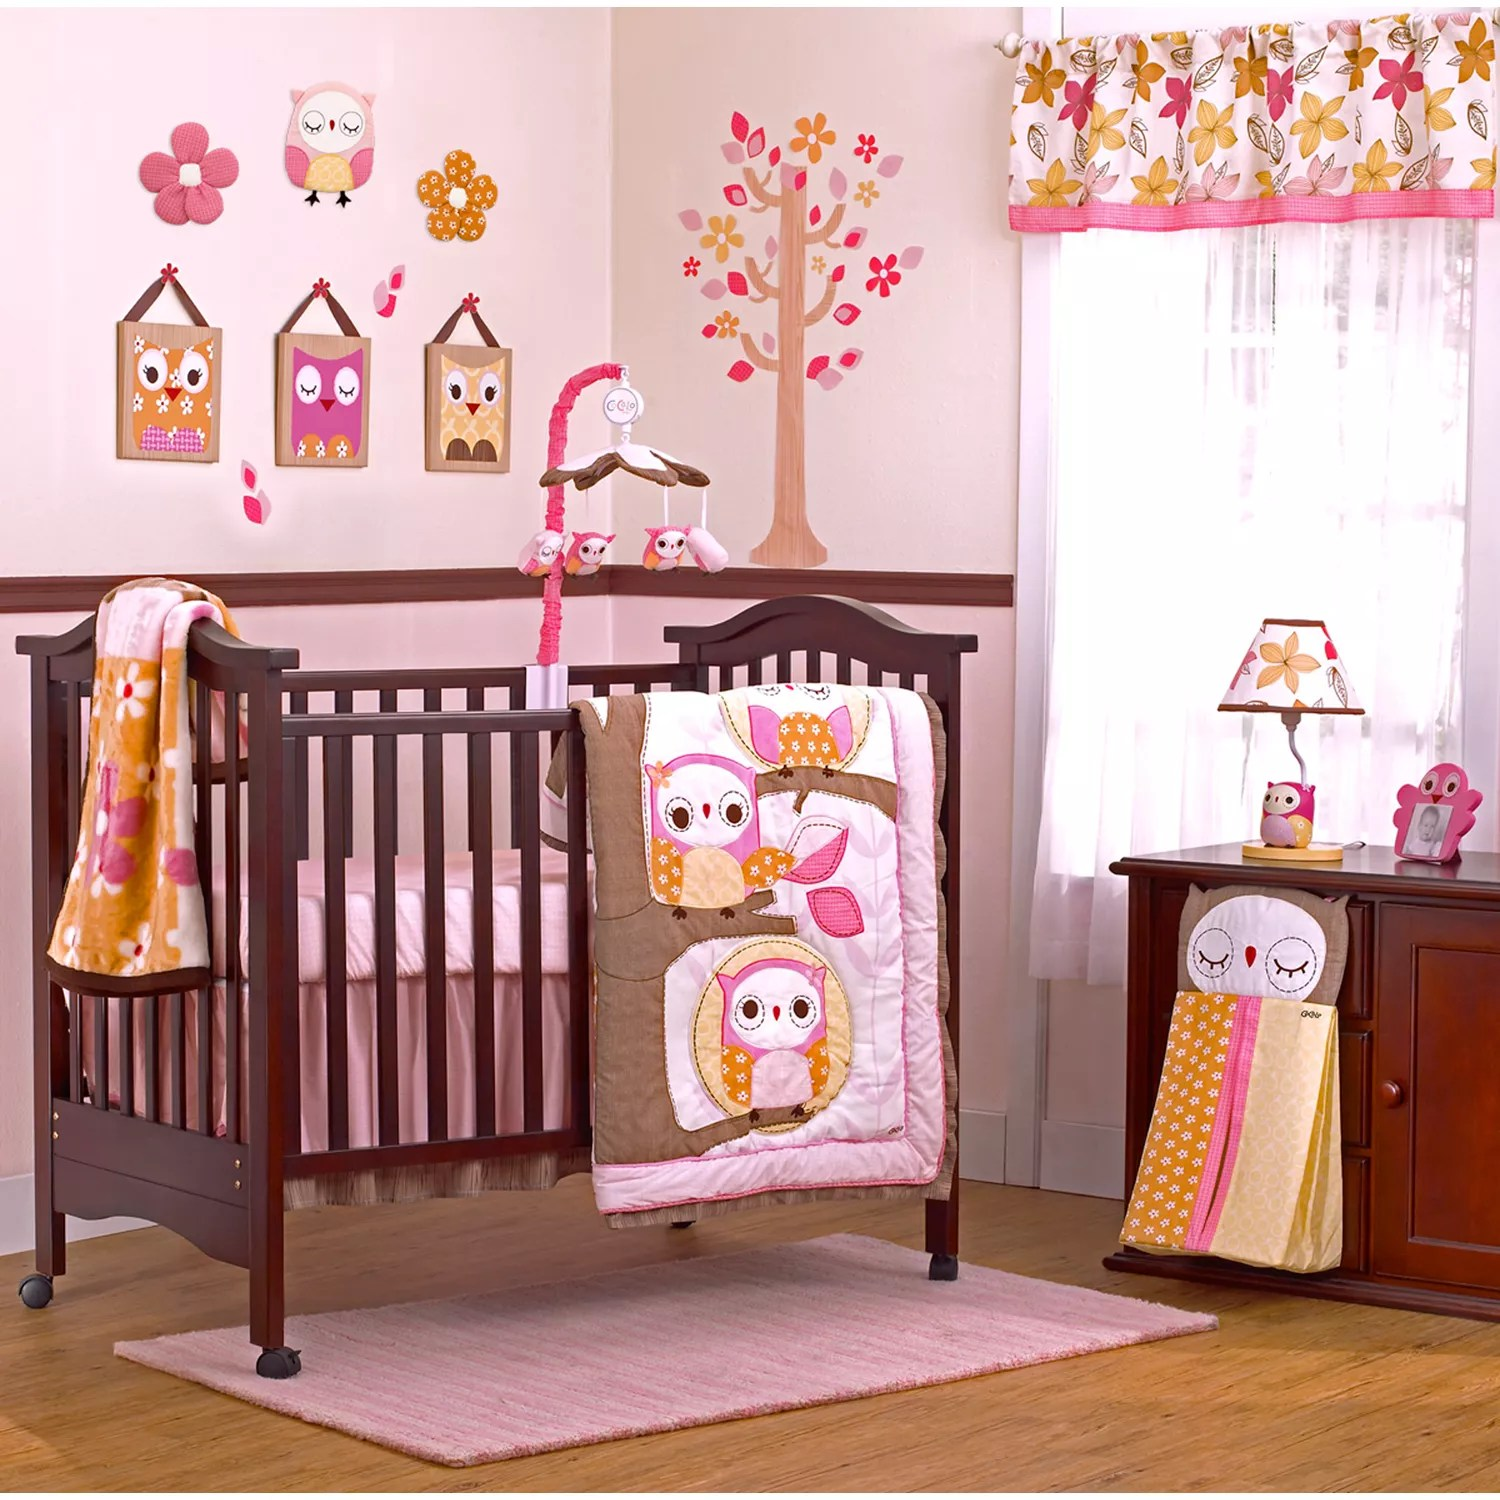 Full Crib Bedding Sets Cocalo Baby In The Woods 8 Pc Crib Bedding Set